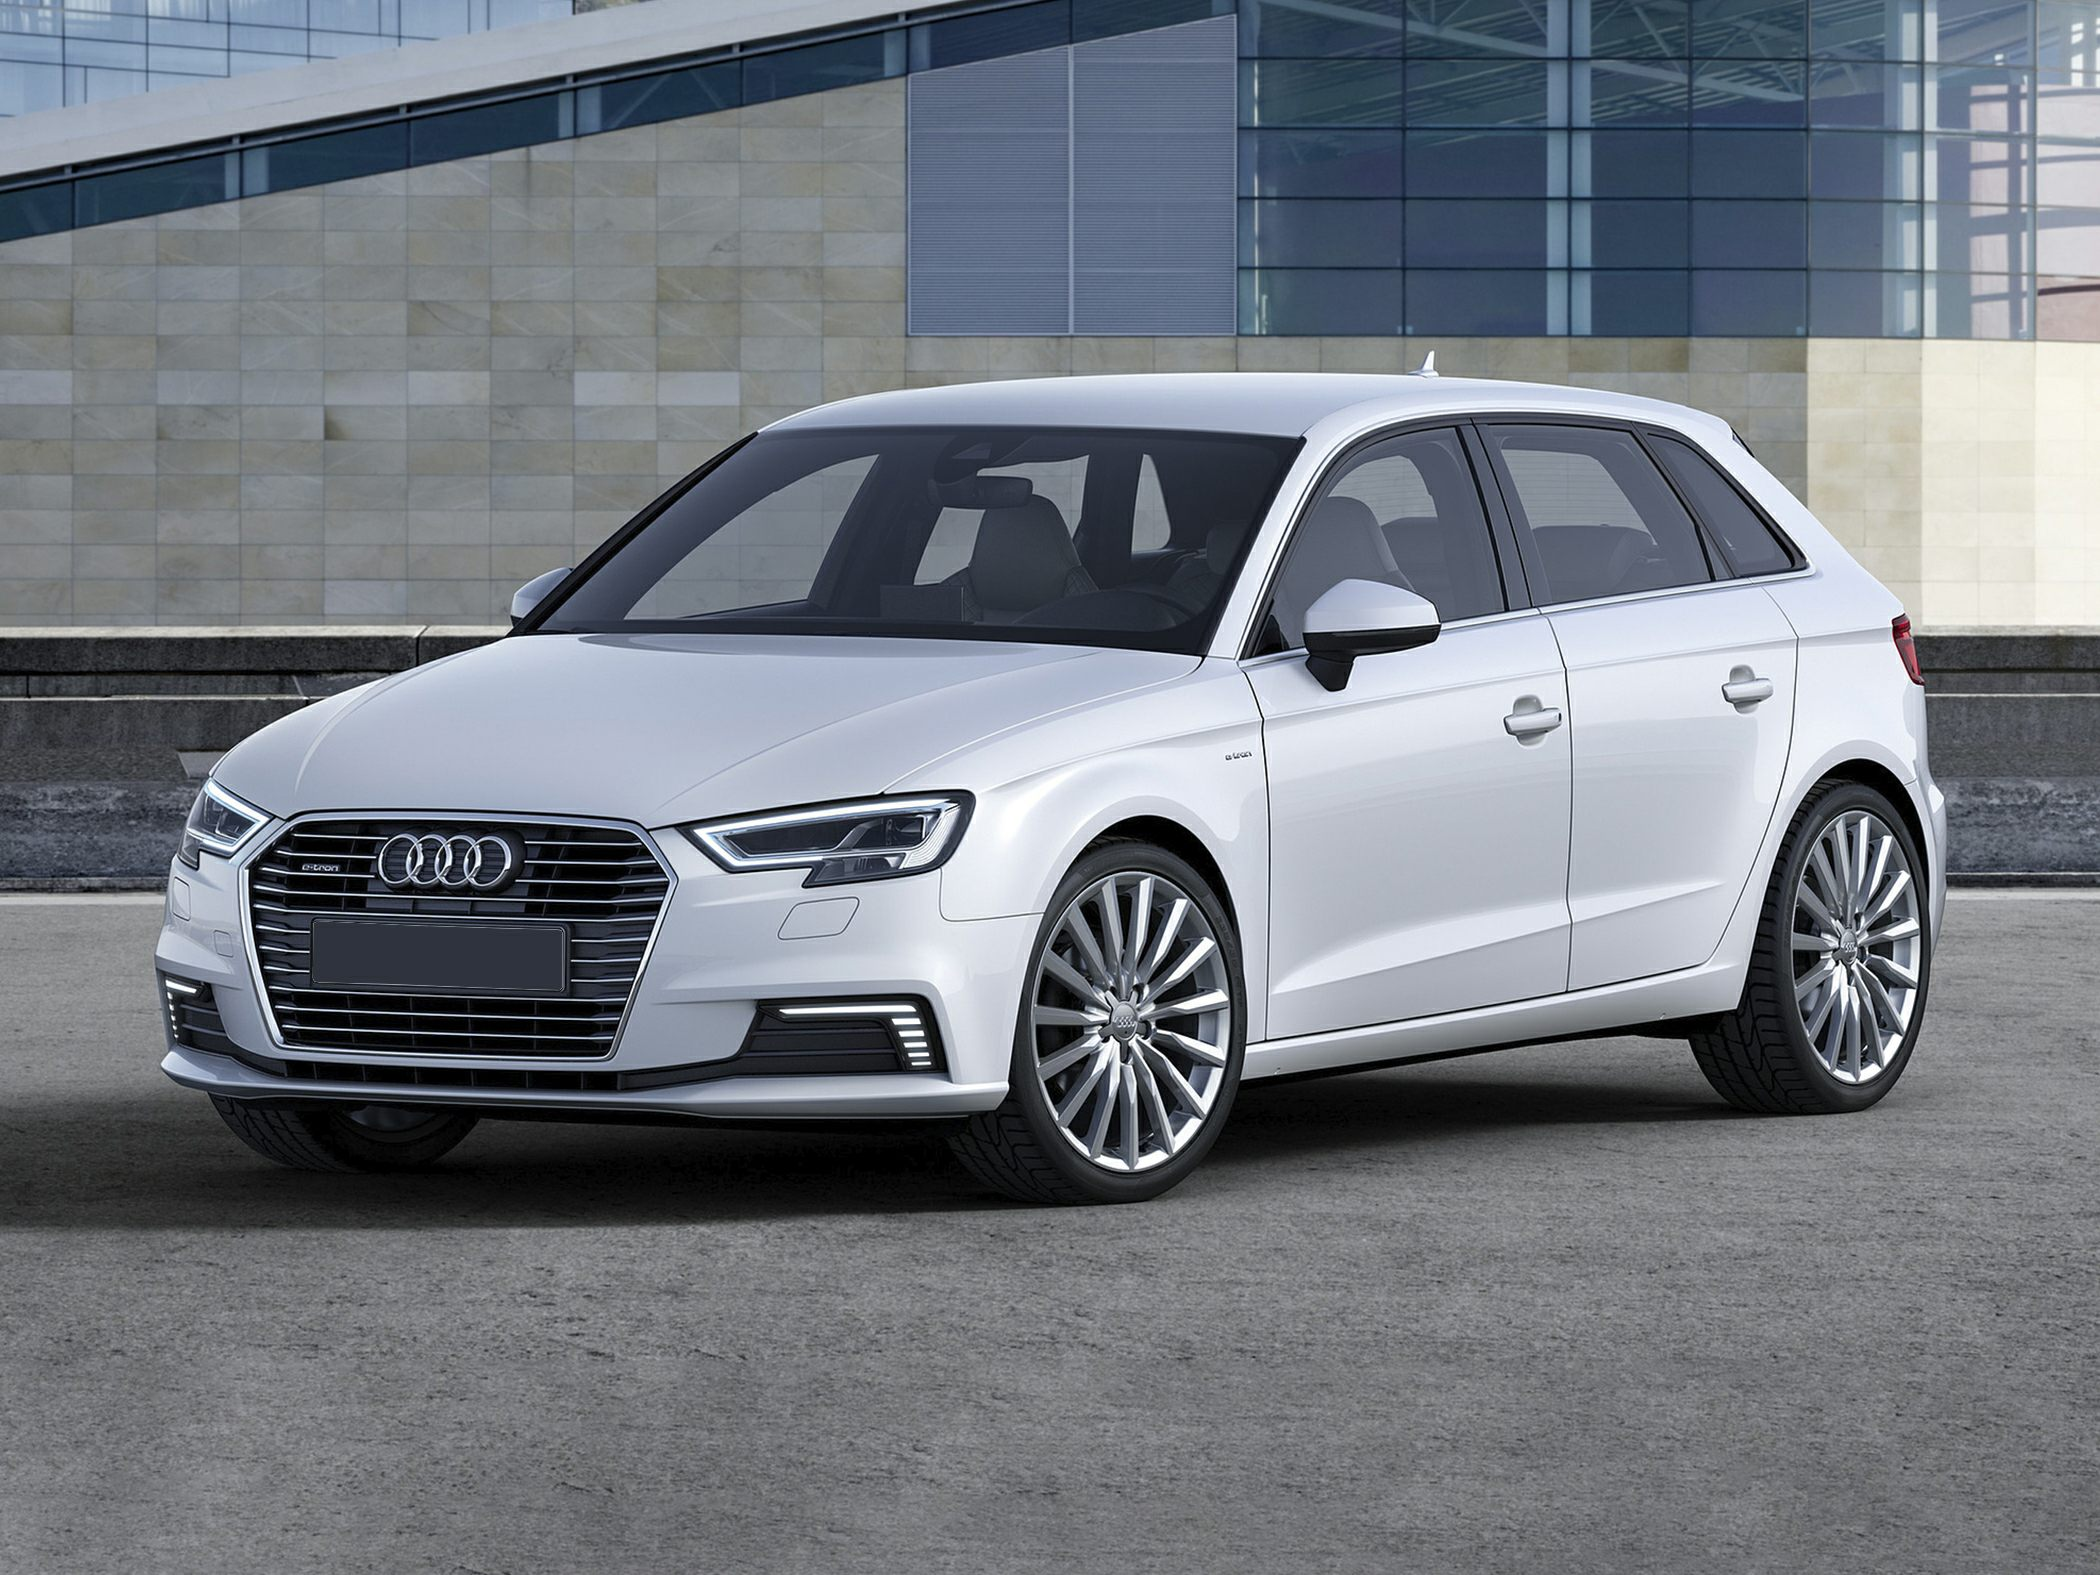 2017 audi a3 e tron deals prices incentives leases overview carsdirect. Black Bedroom Furniture Sets. Home Design Ideas